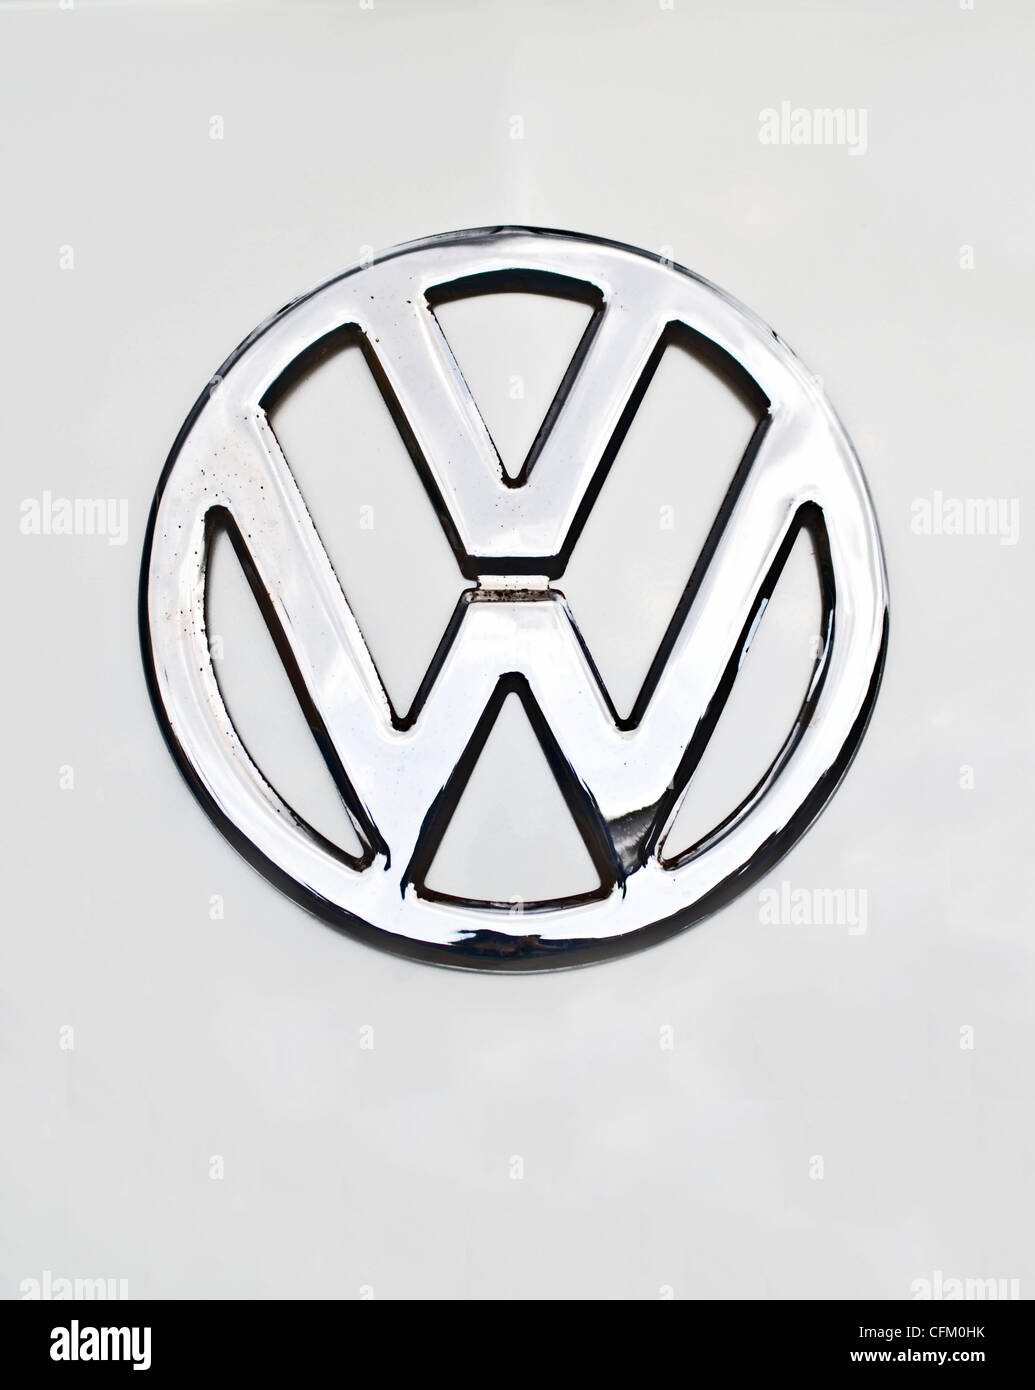 A Volkswagen (VW) vehicle logo on white background - Stock Image